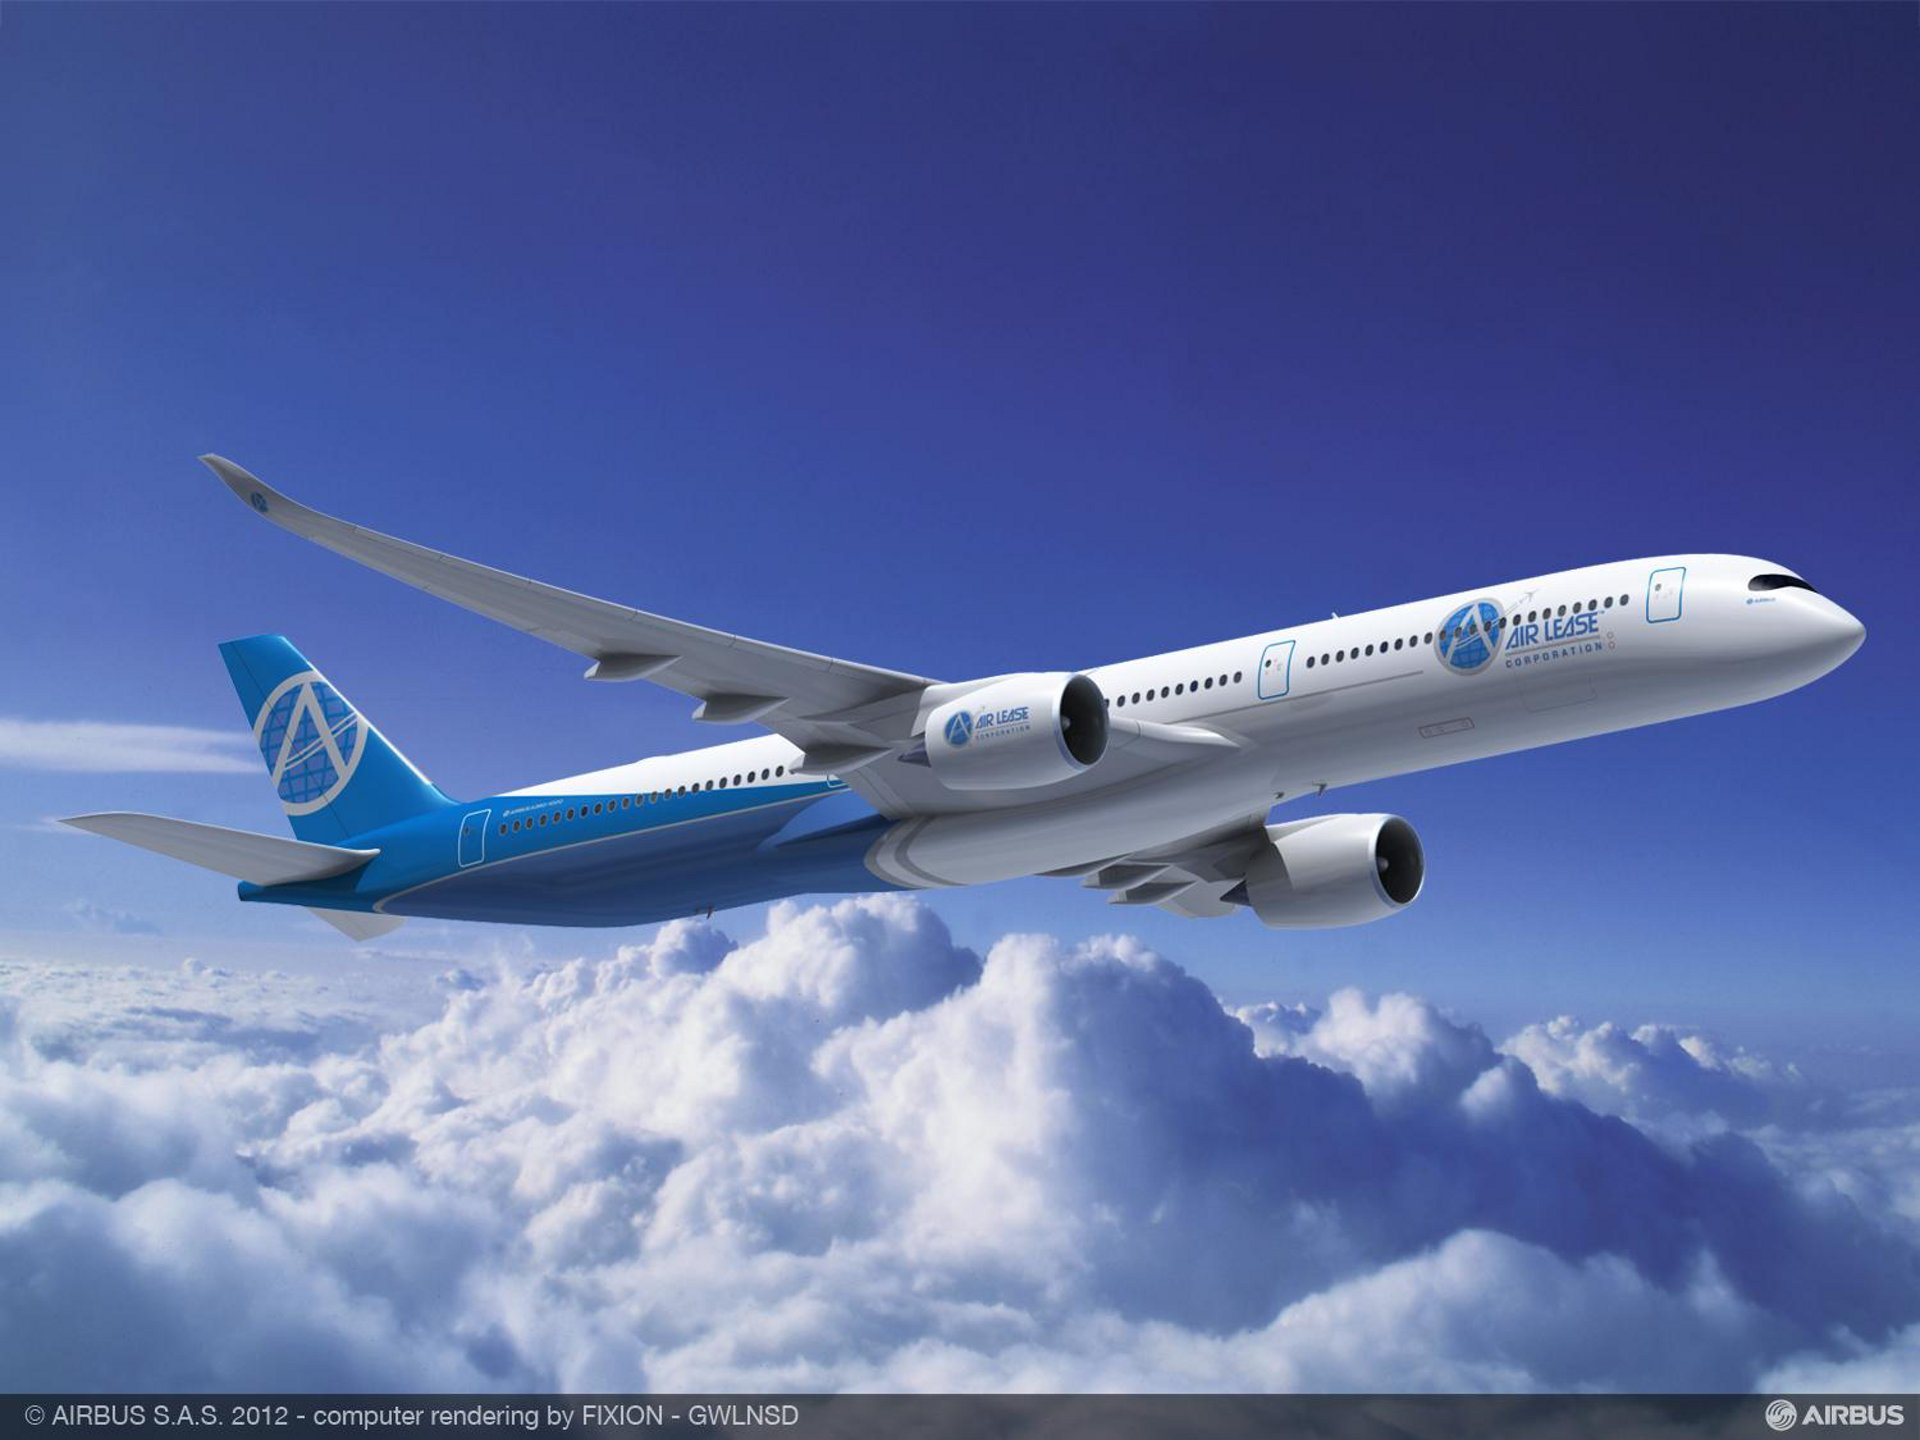 Air Lease Corporation of Los Angeles inked a new contract with Airbus for 25 A350 XWB Family aircraft, including five A350-1000s (shown here) and 20 A350-900s